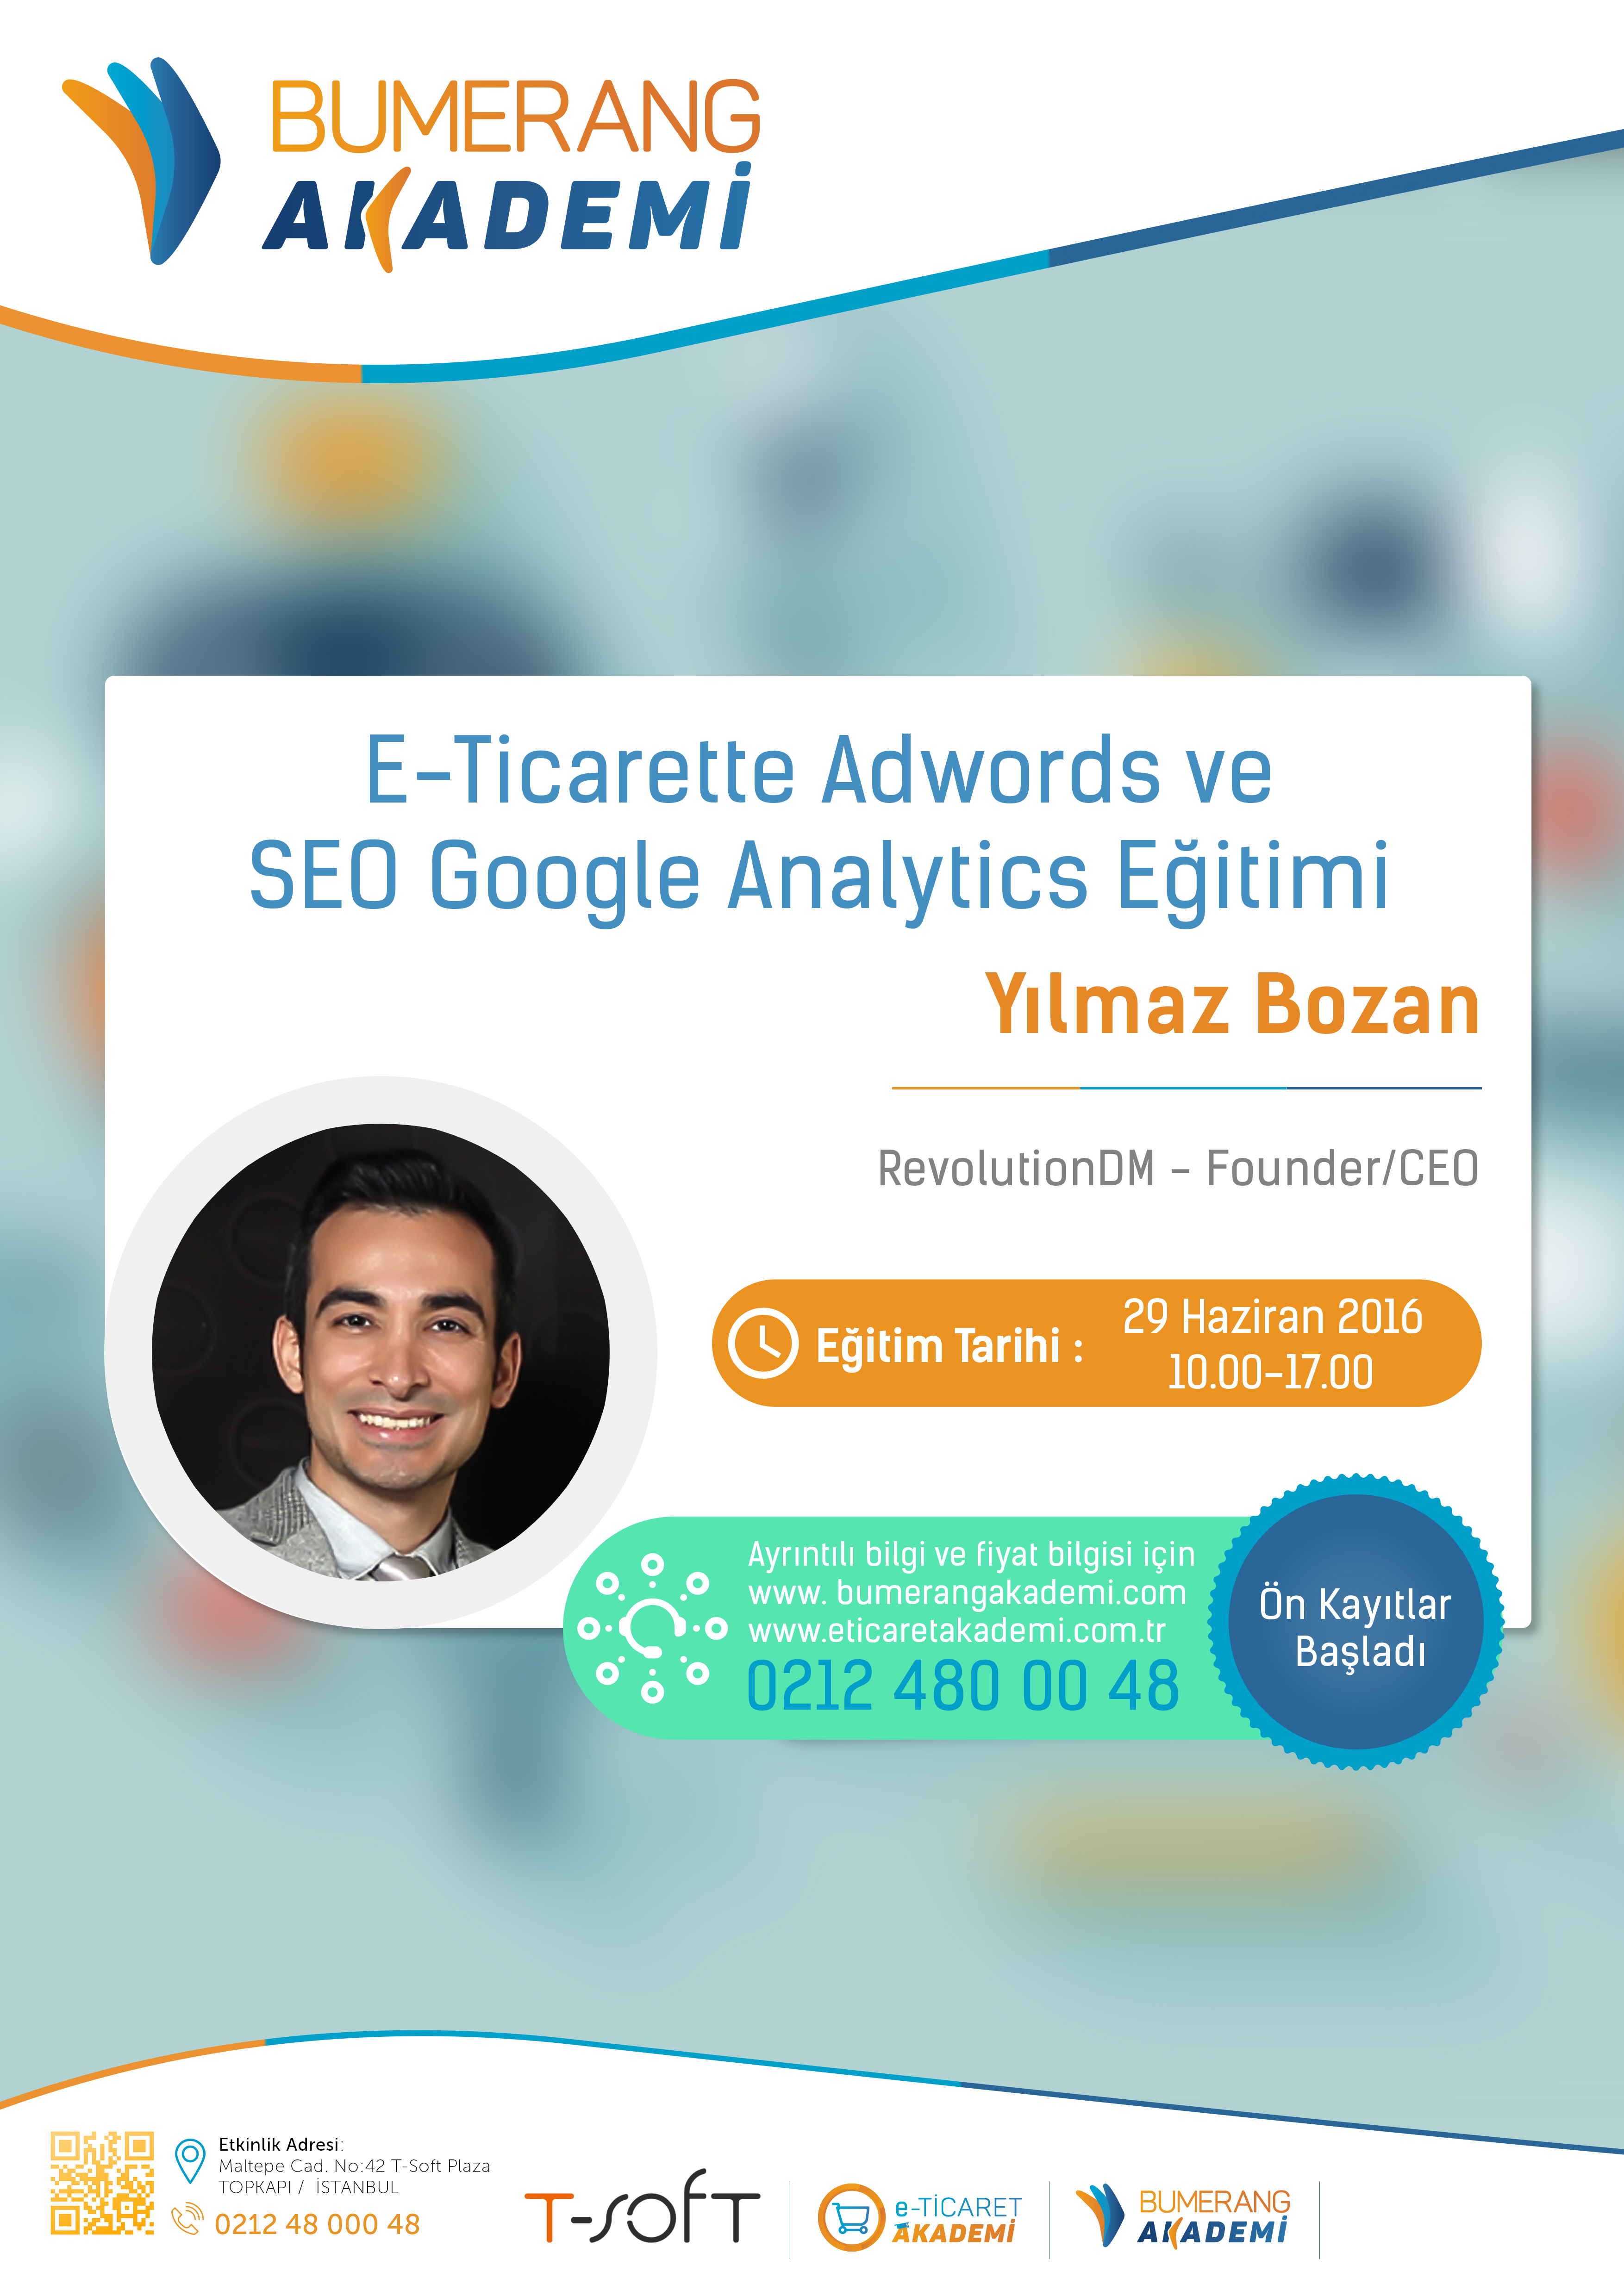 E-Ticarette Adwords ve SEO Google Analytics Eğitimi